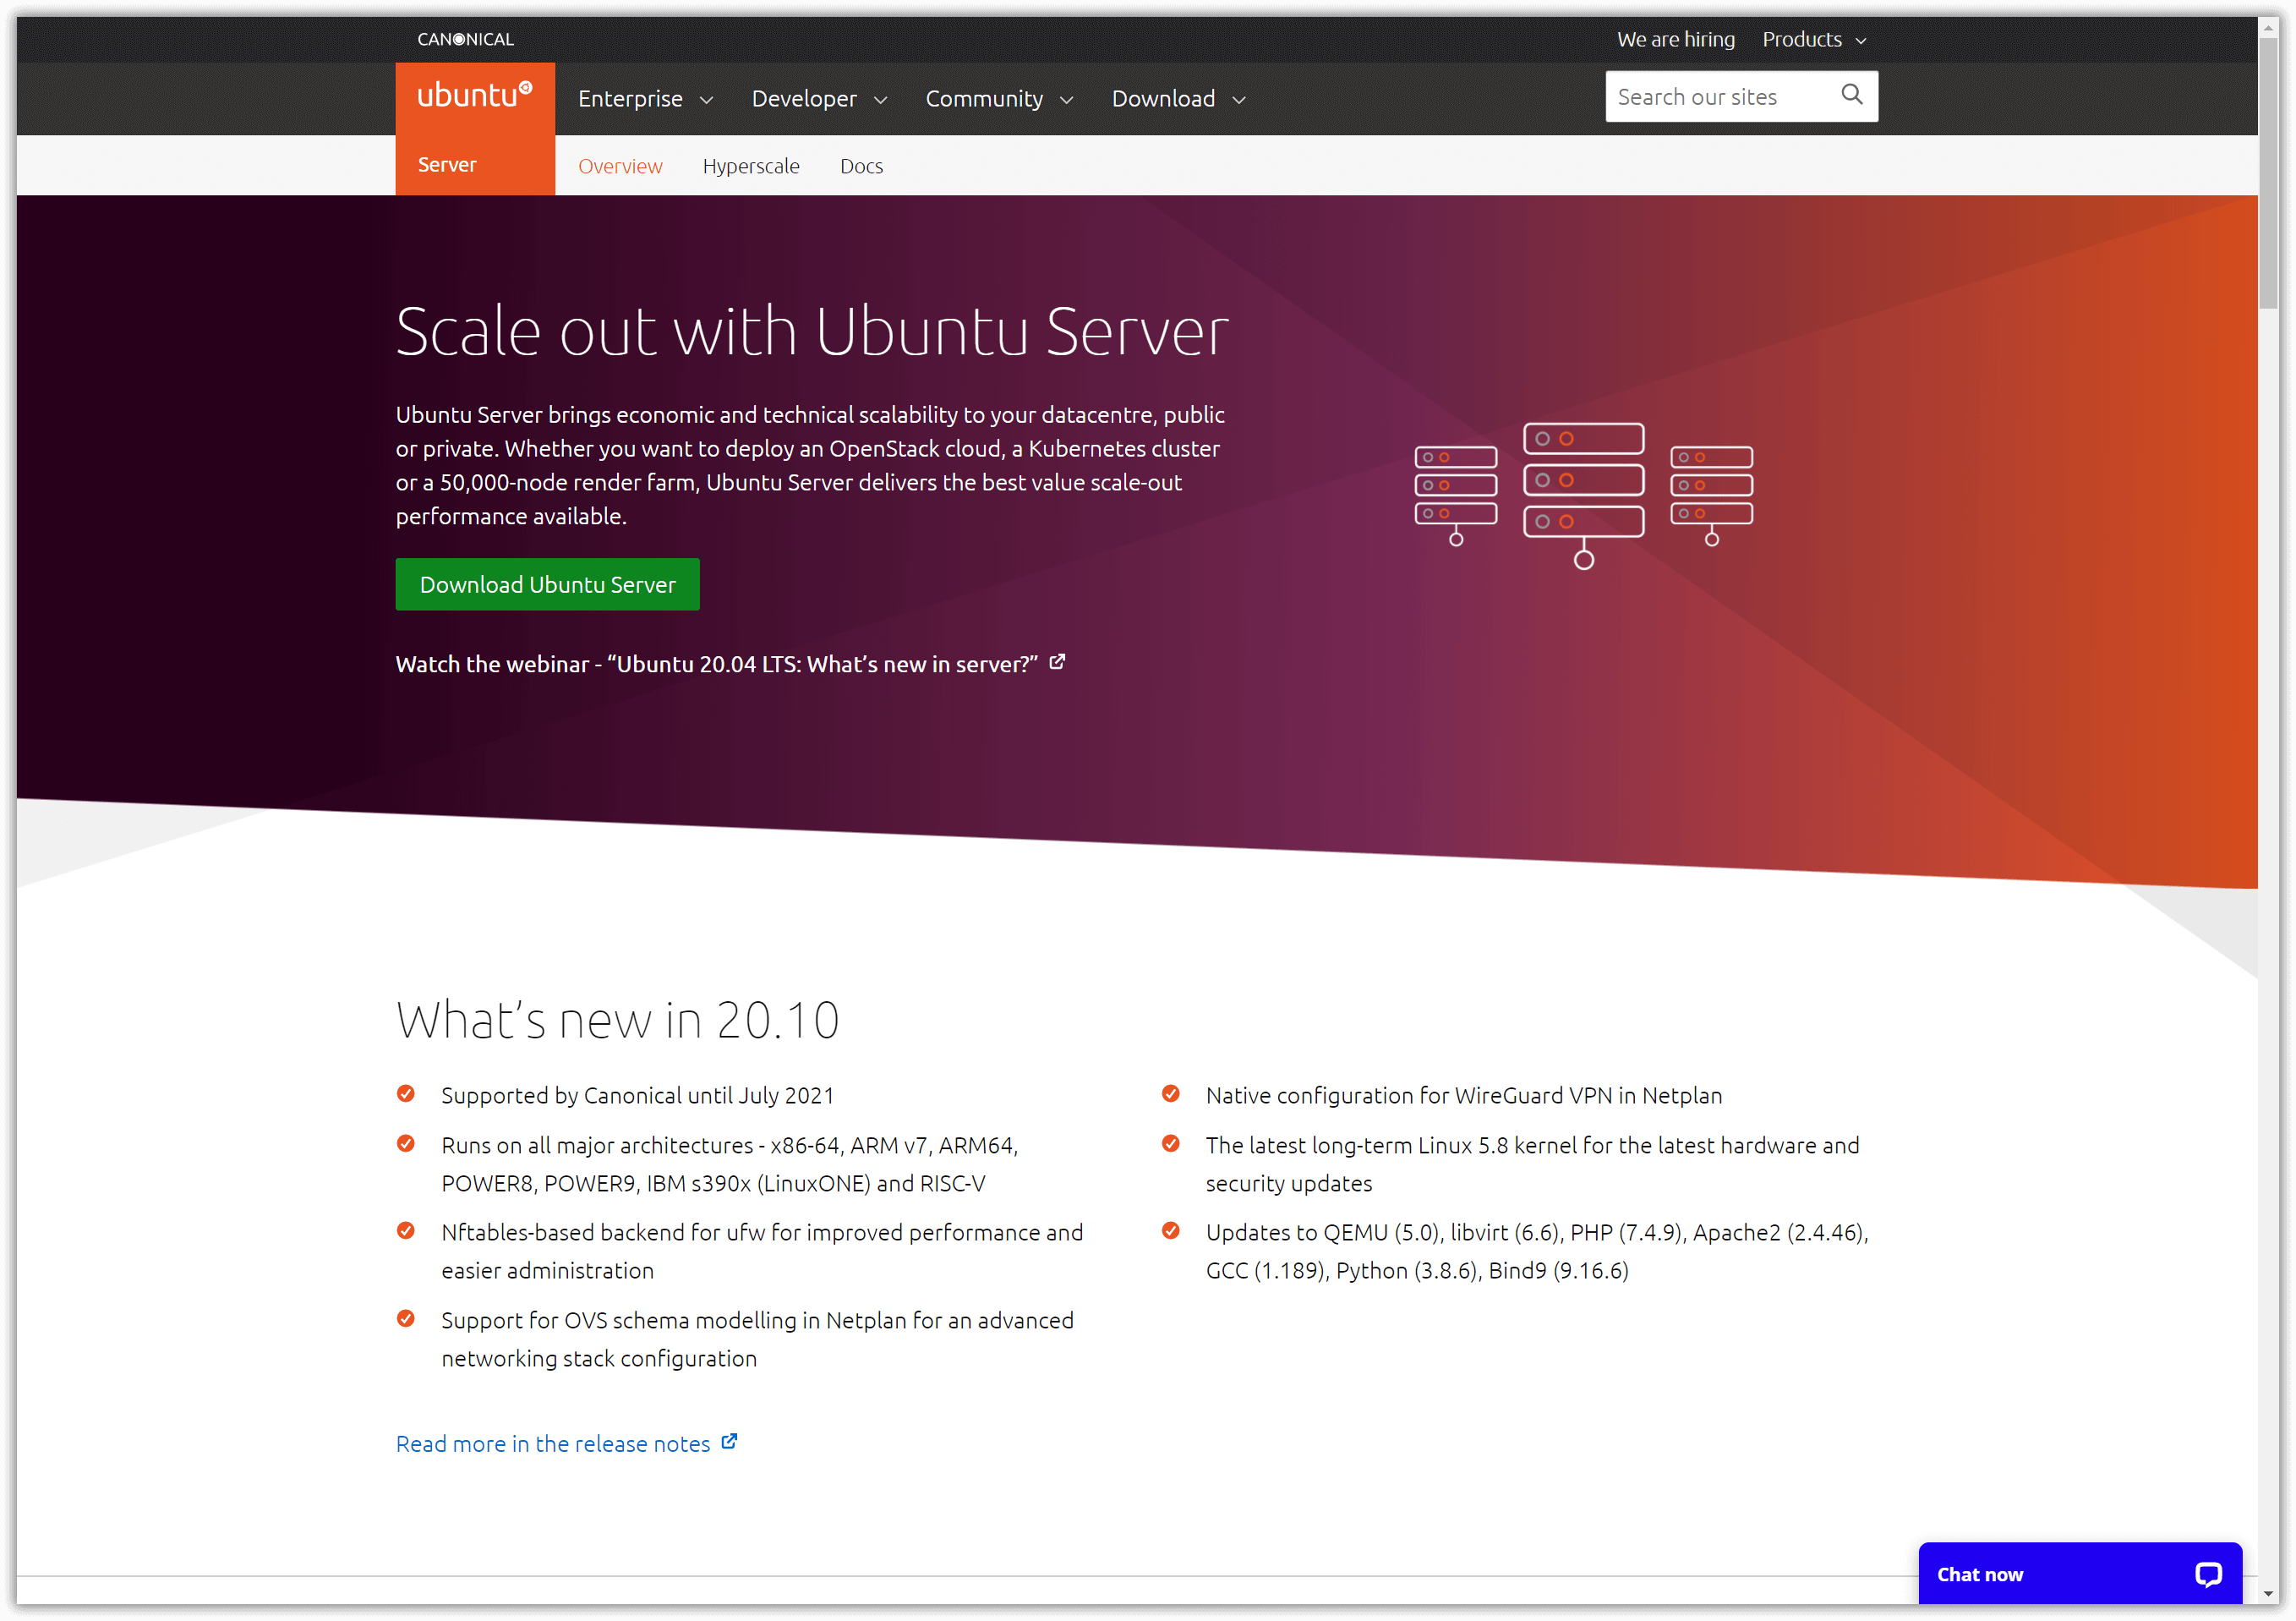 Die Ubuntu Server-Homepage